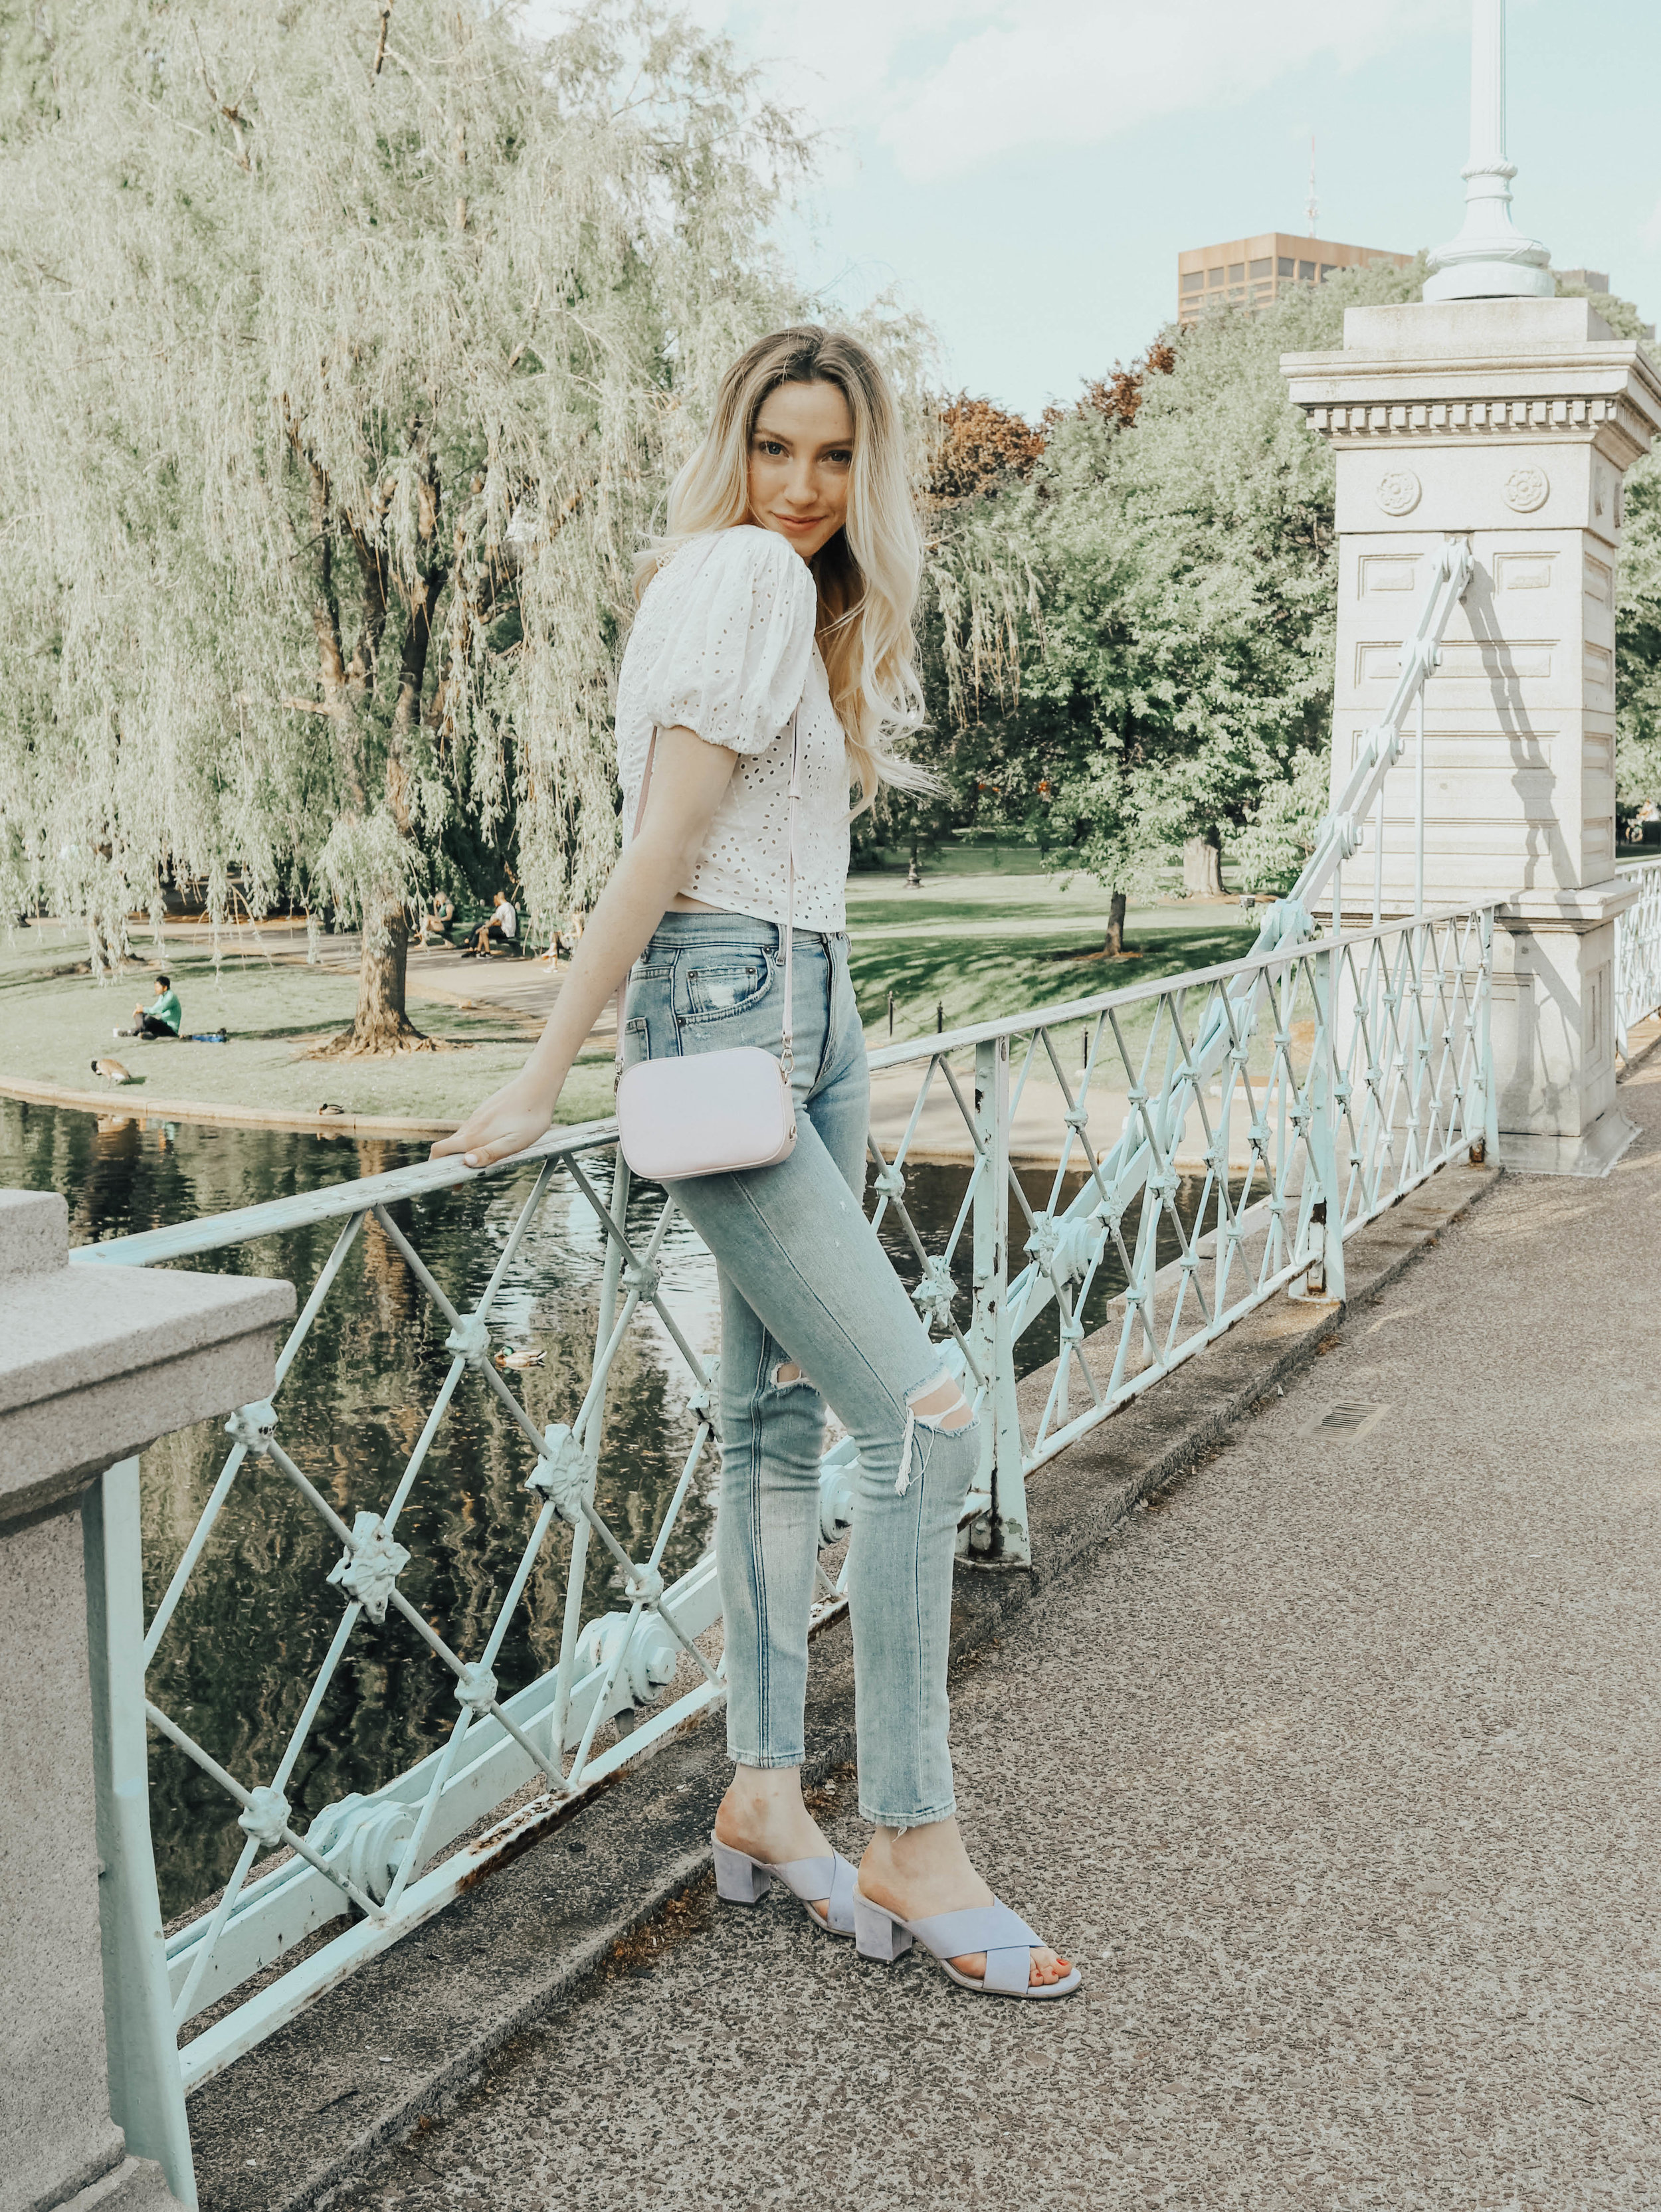 Puff Sleeve Outfit | @maevestier